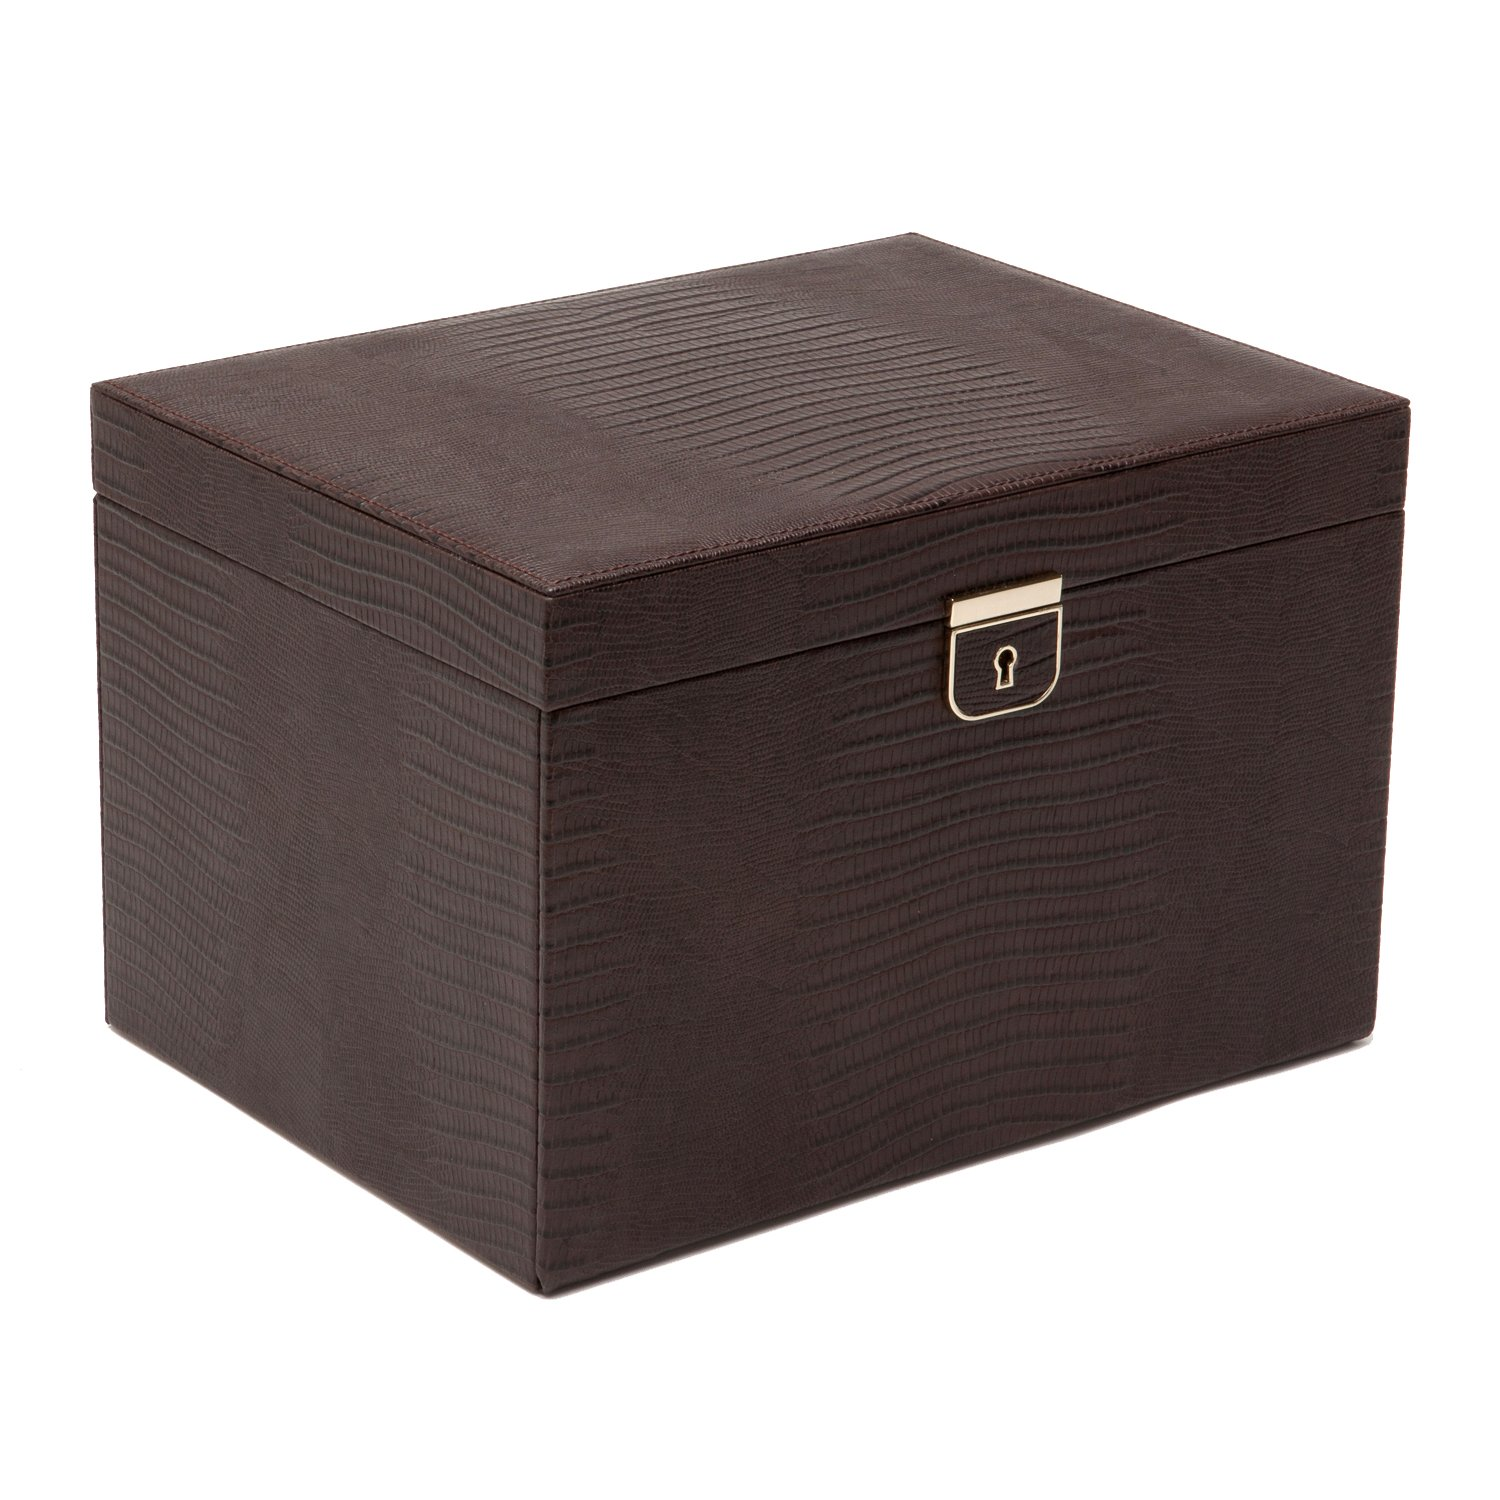 WOLF 213095 Palermo Large Jewelry Box, Brown by WOLF (Image #1)